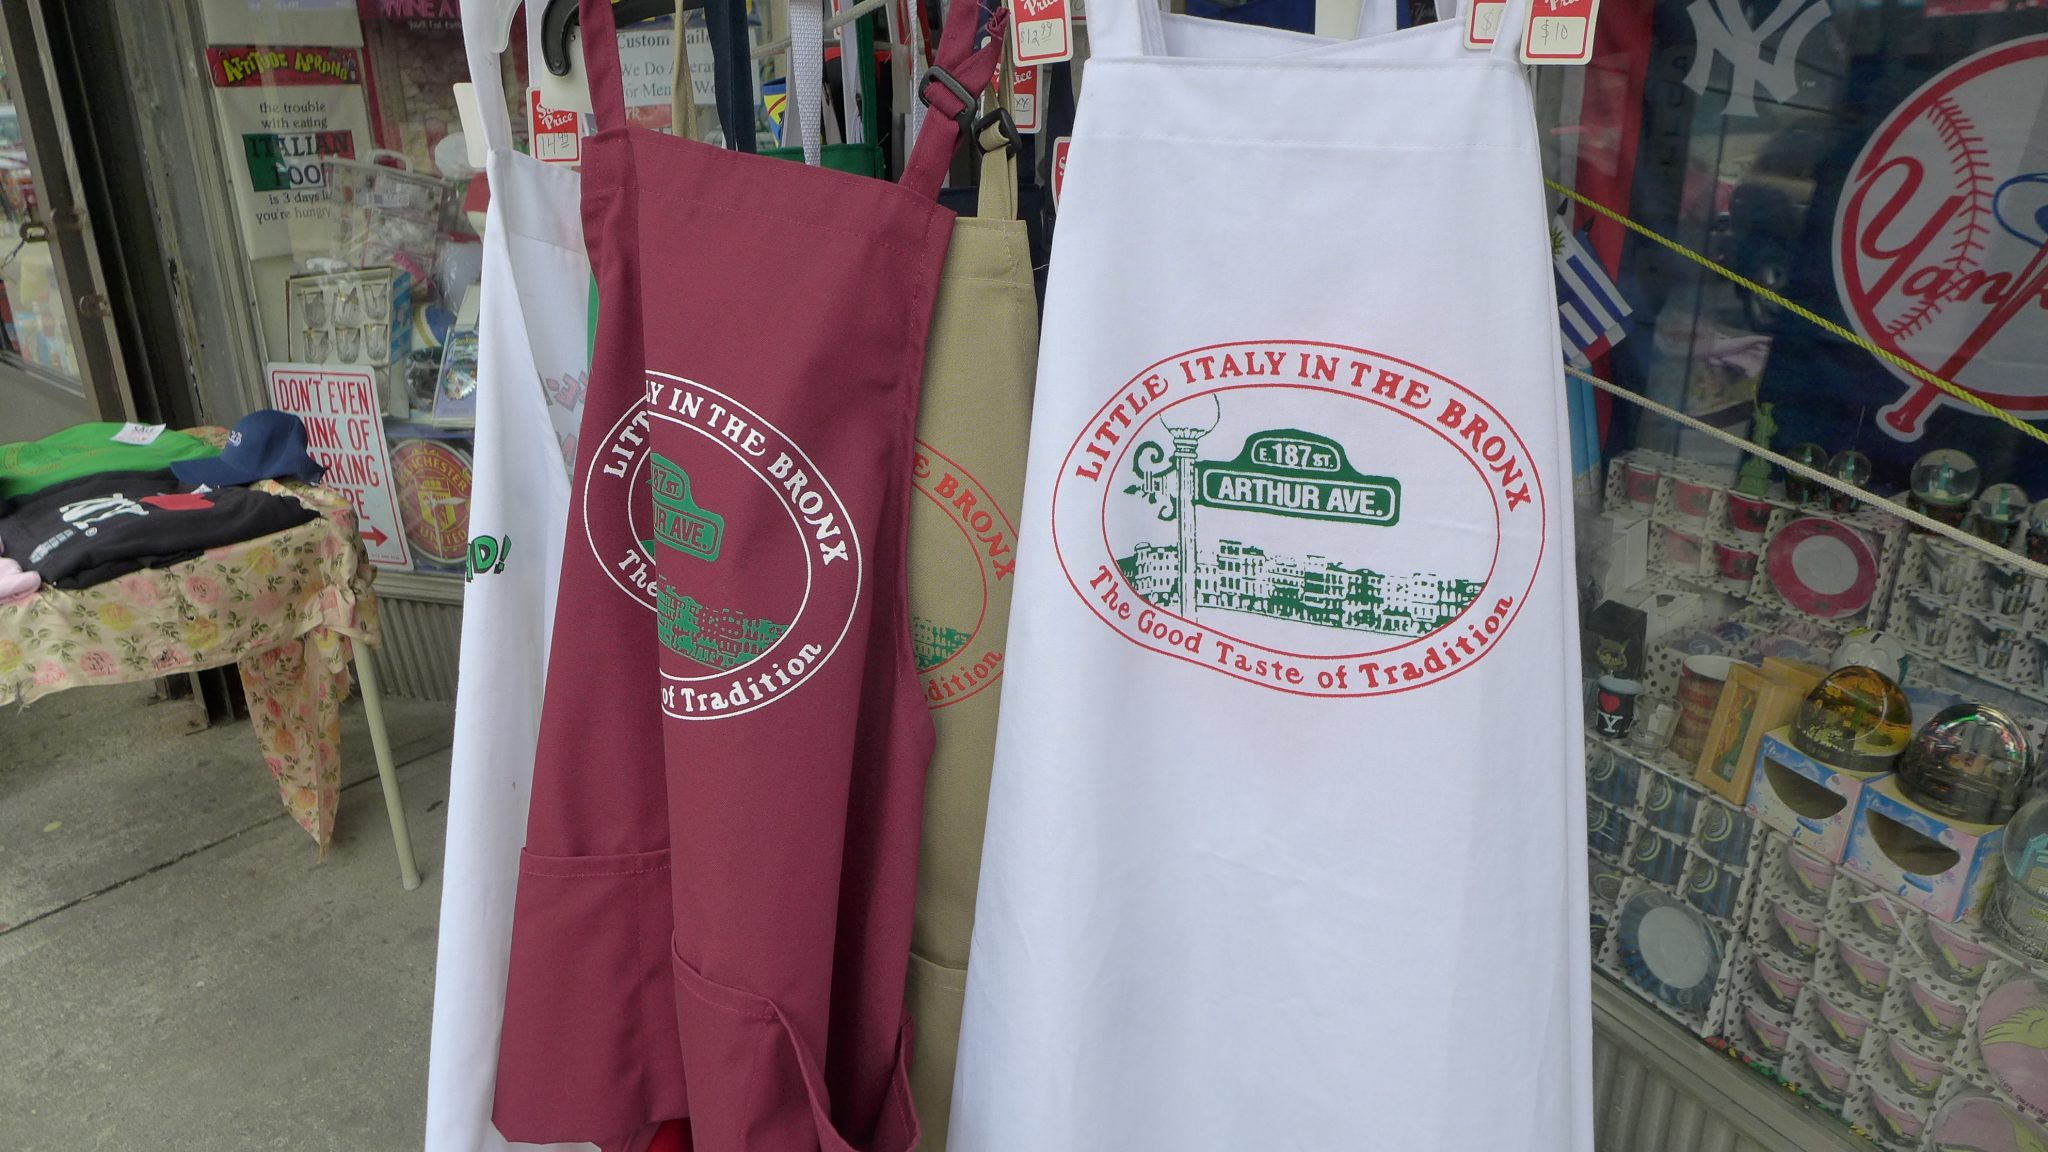 aprons hanging outside a market on Arthur Avenue in the Bronx.